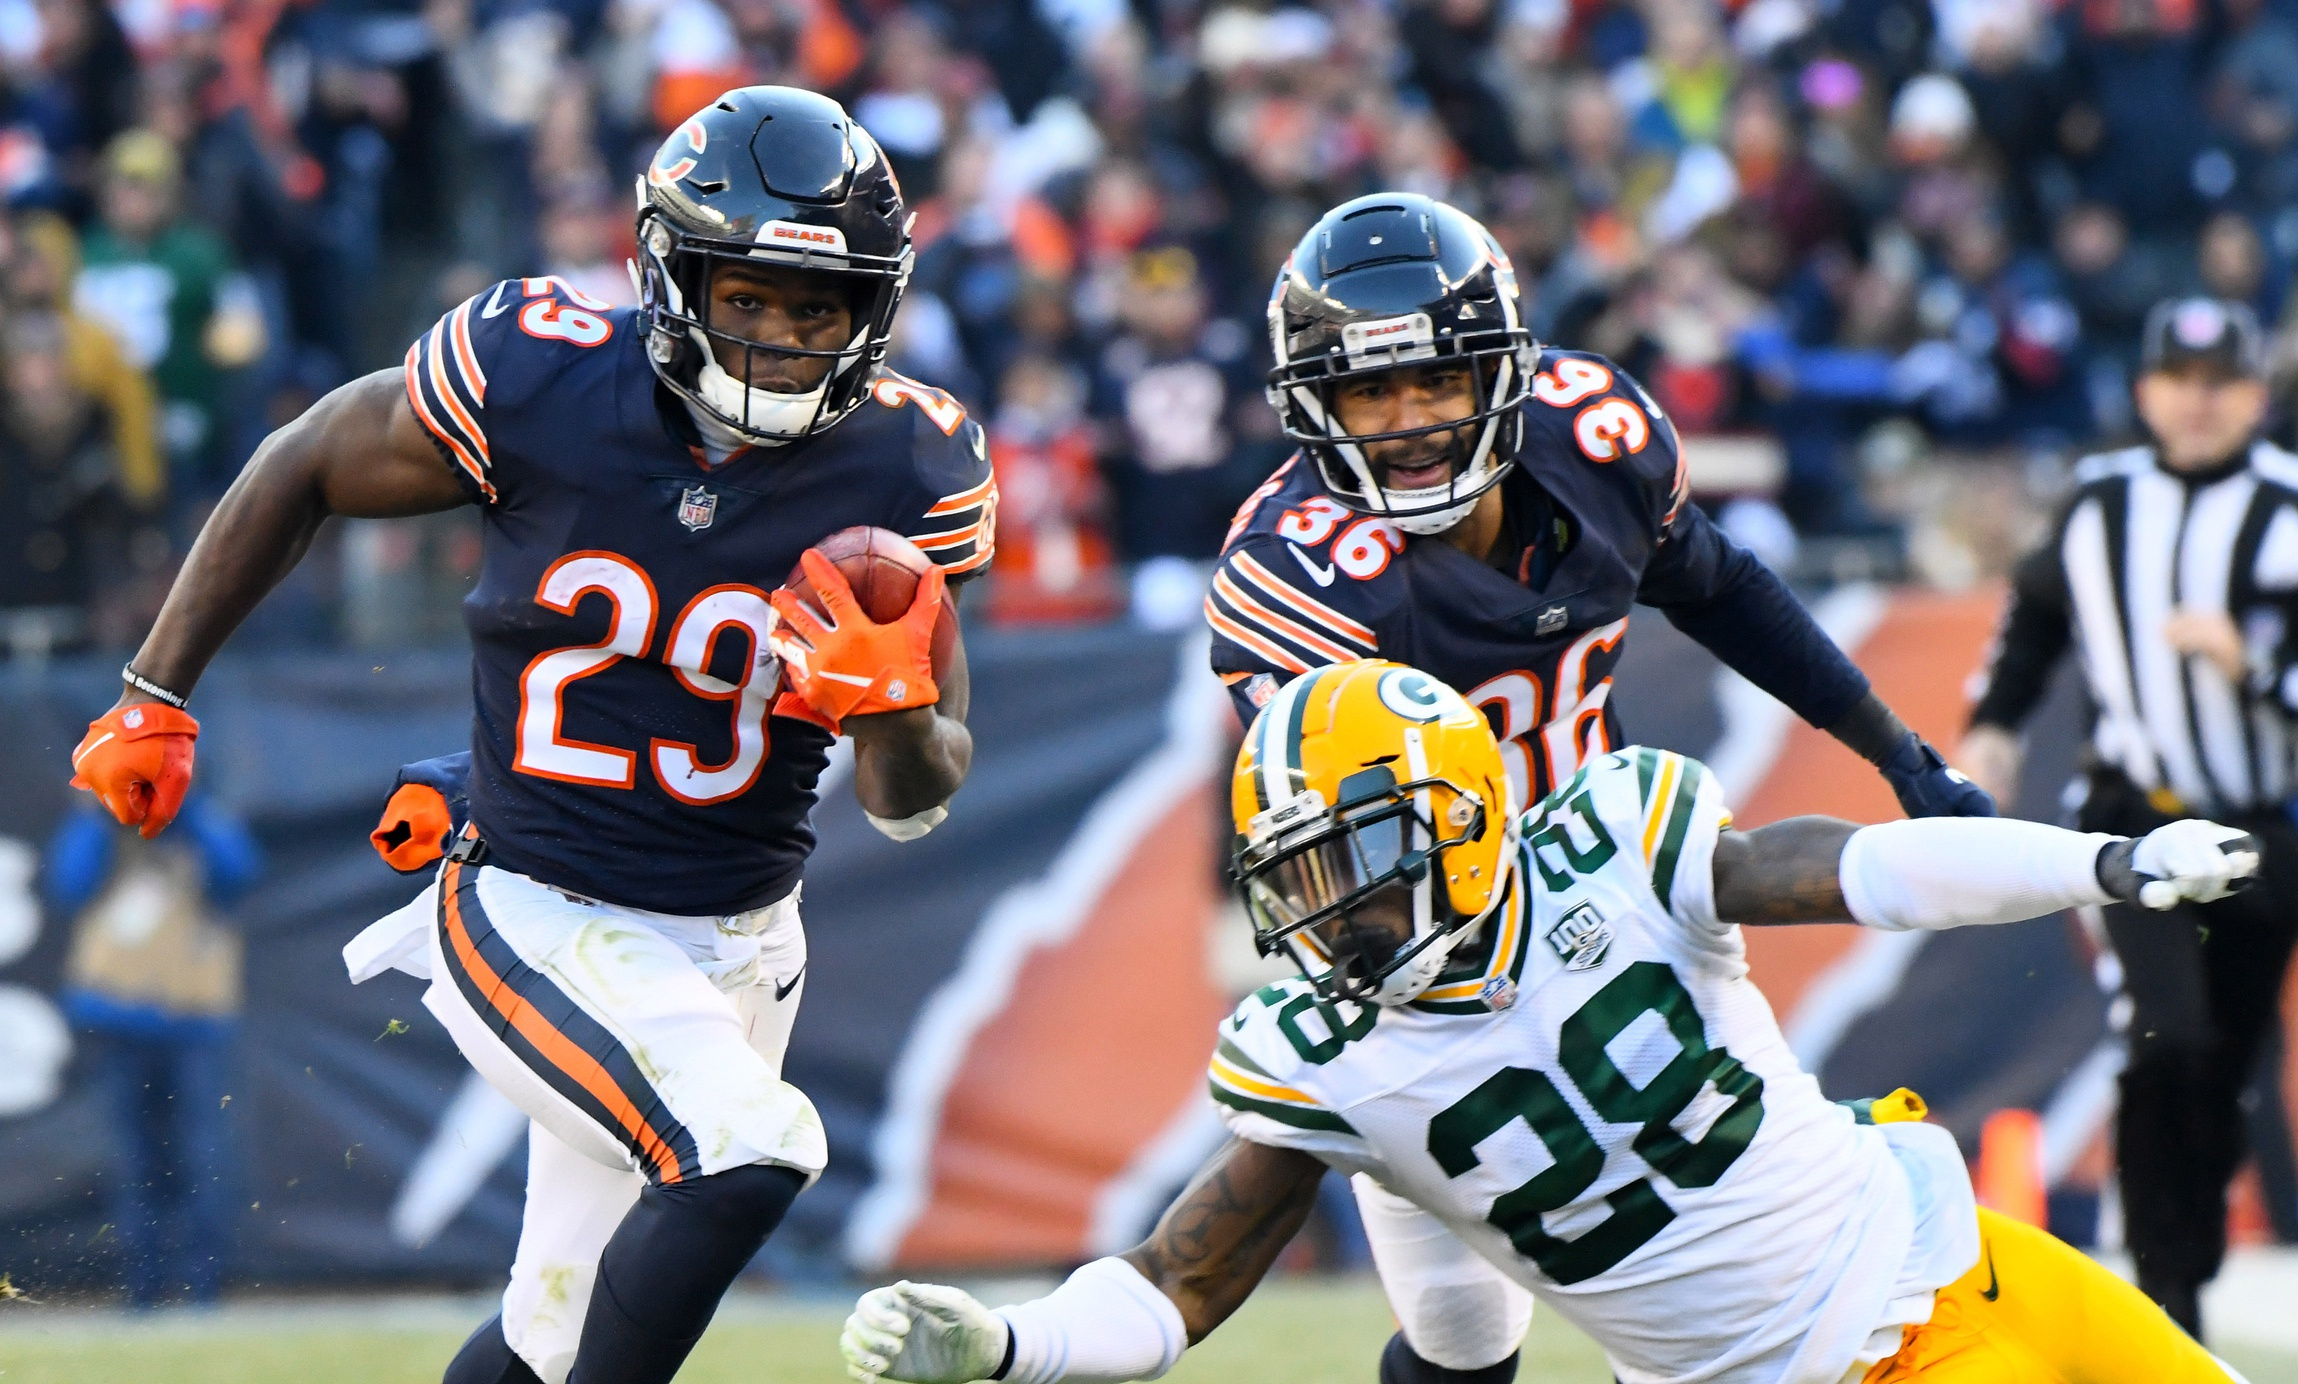 Bears' Tarik Cohen is one of the most valuable running backs in football